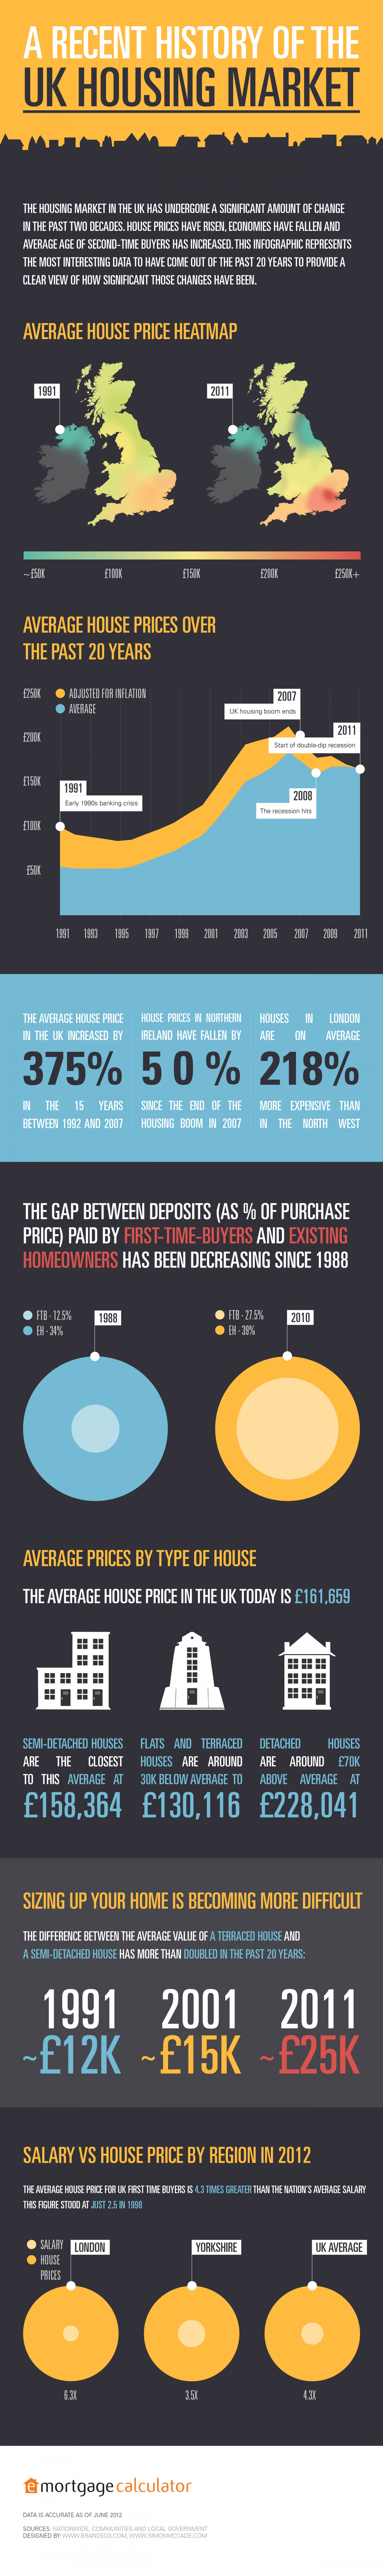 A Recent History of the UK Housing Market Infographic